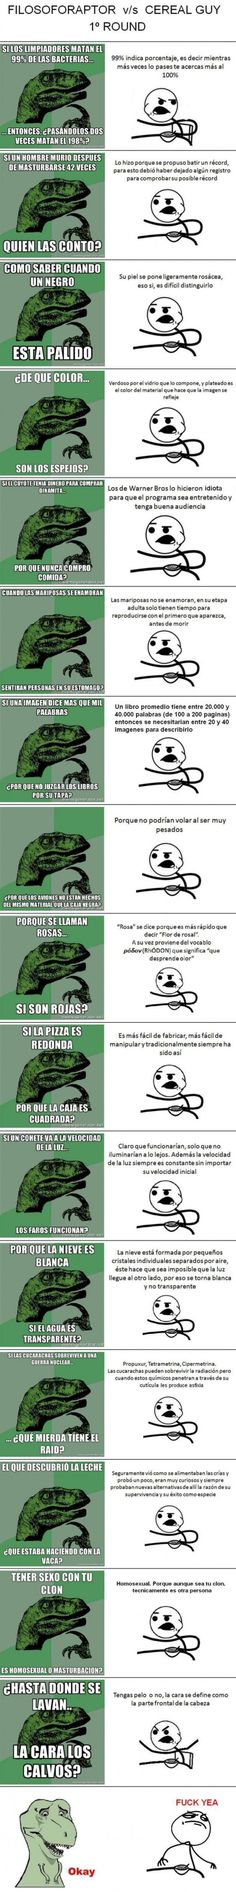 Filosoforaptor VS Cereal Guy 1er Round